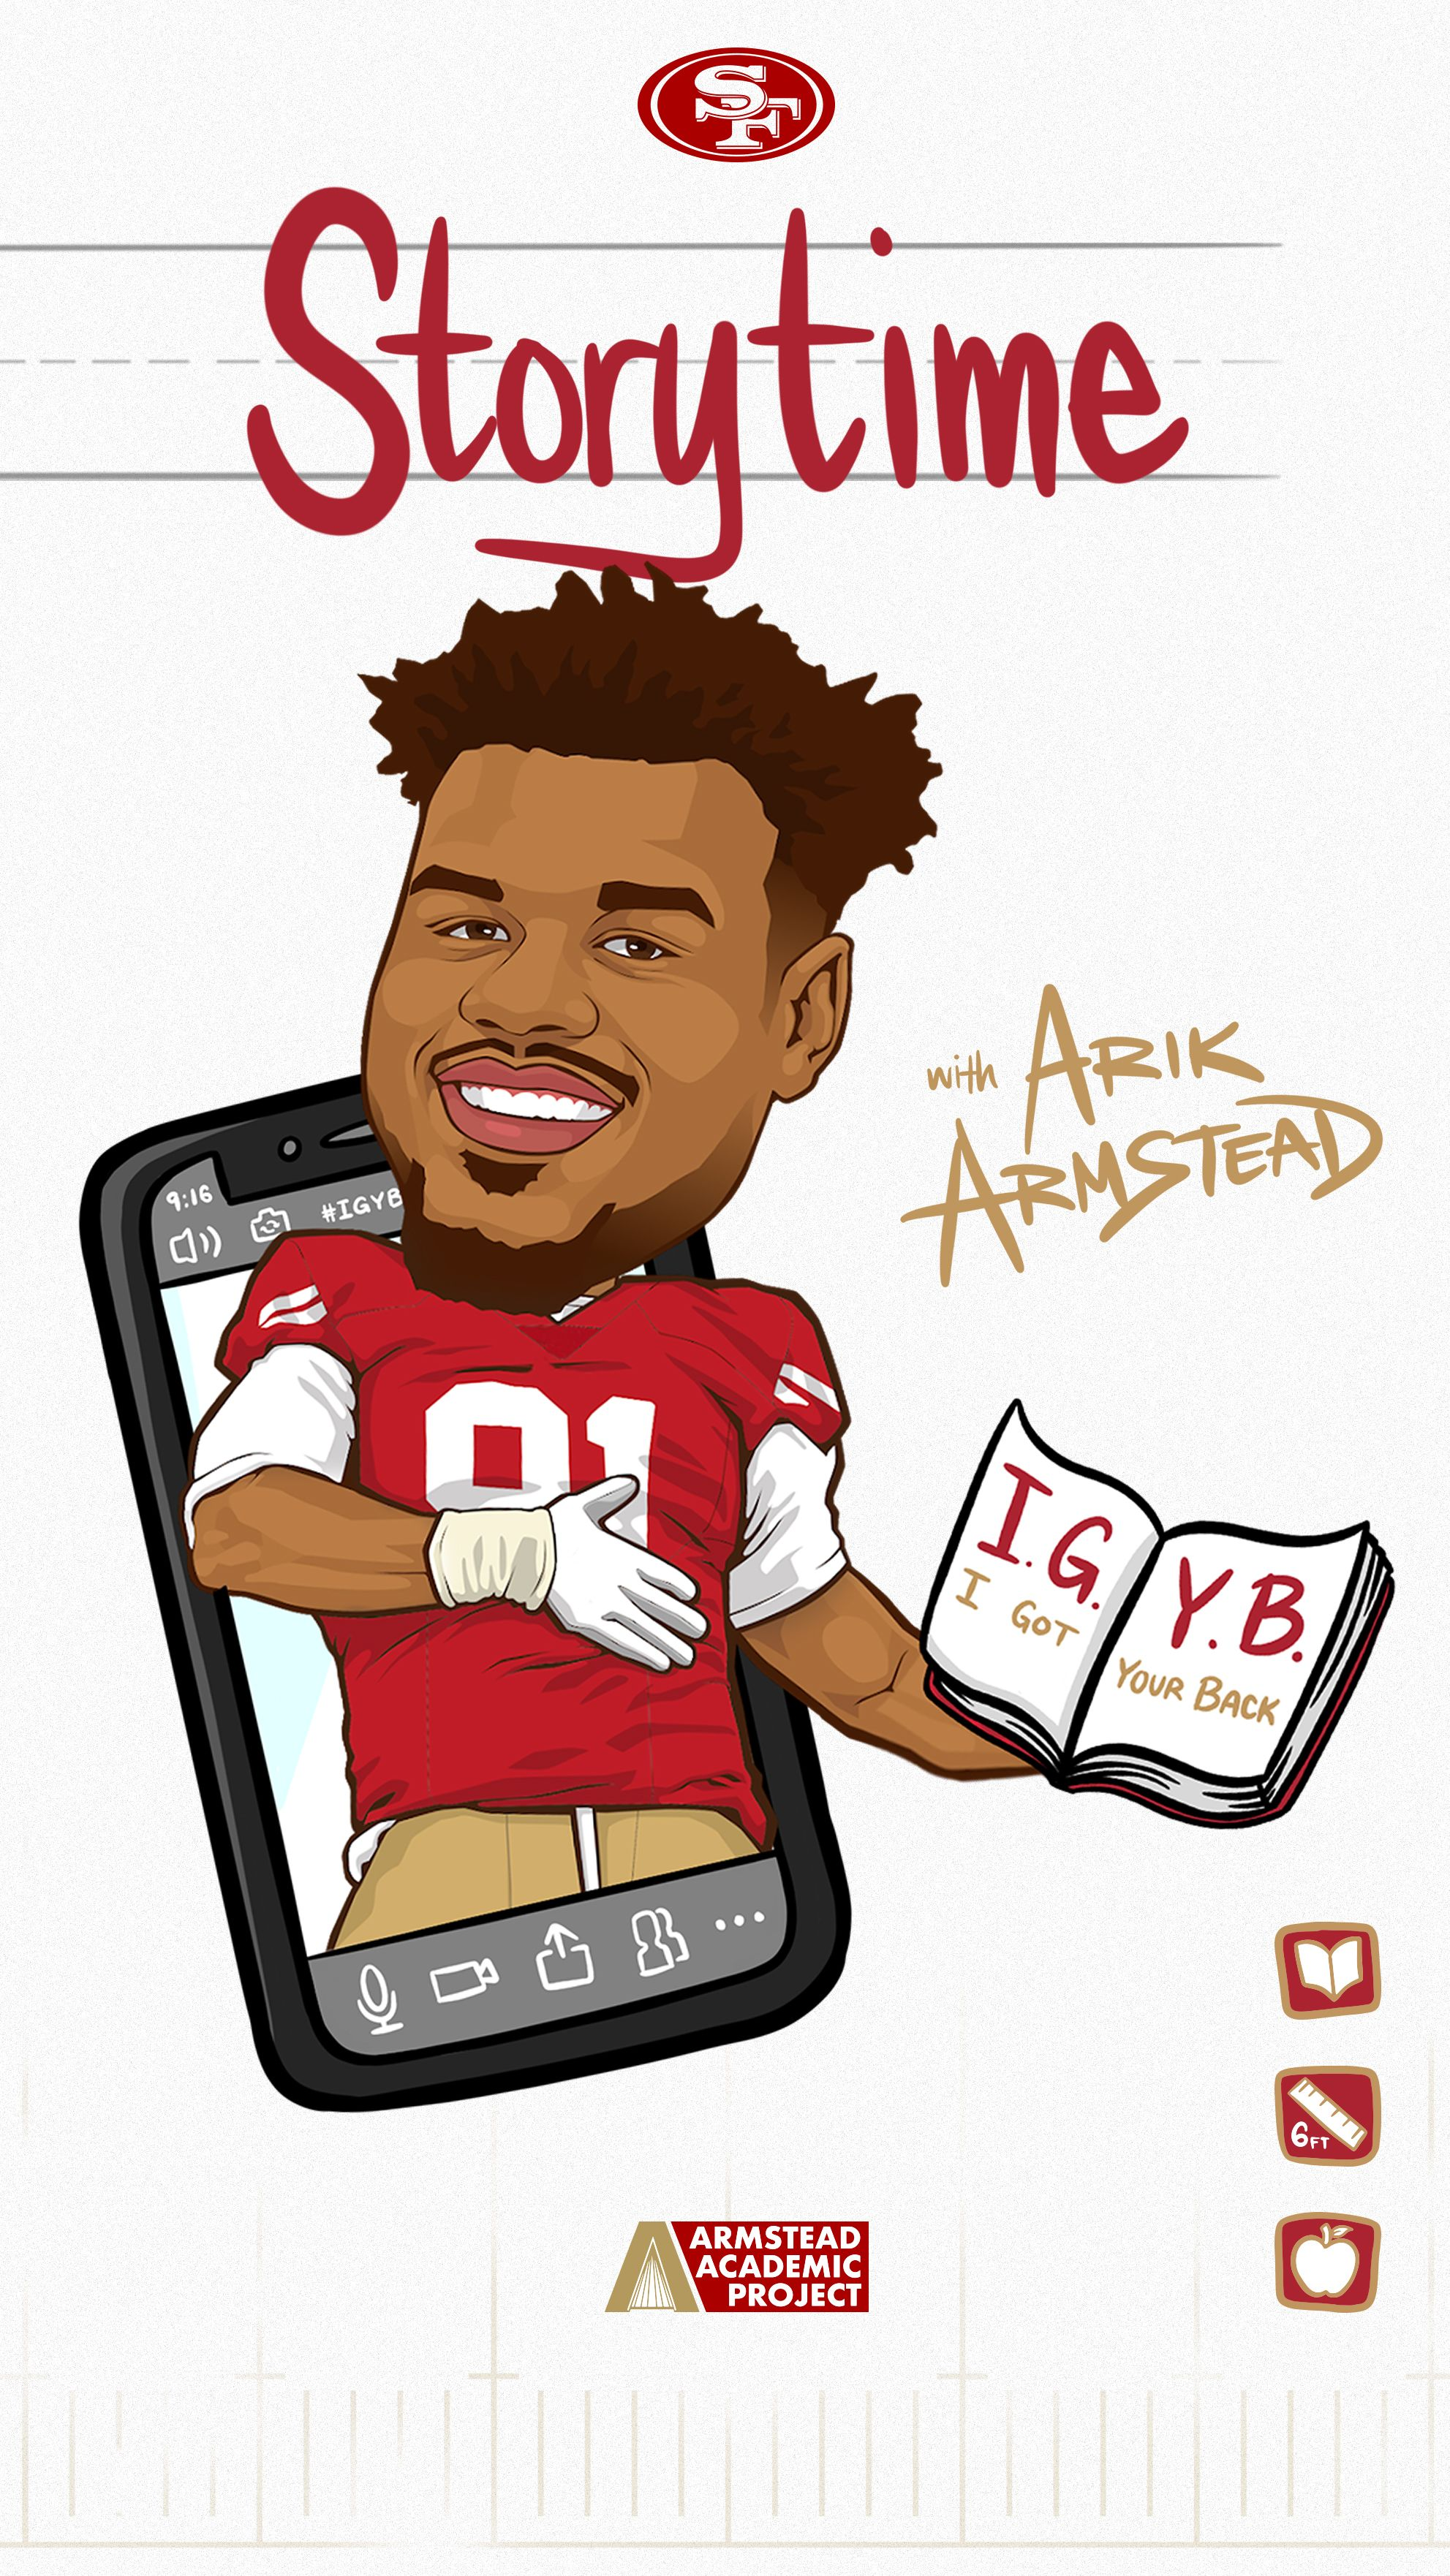 Storytime-with-Arik-Armstead_Social_9Artboard 2